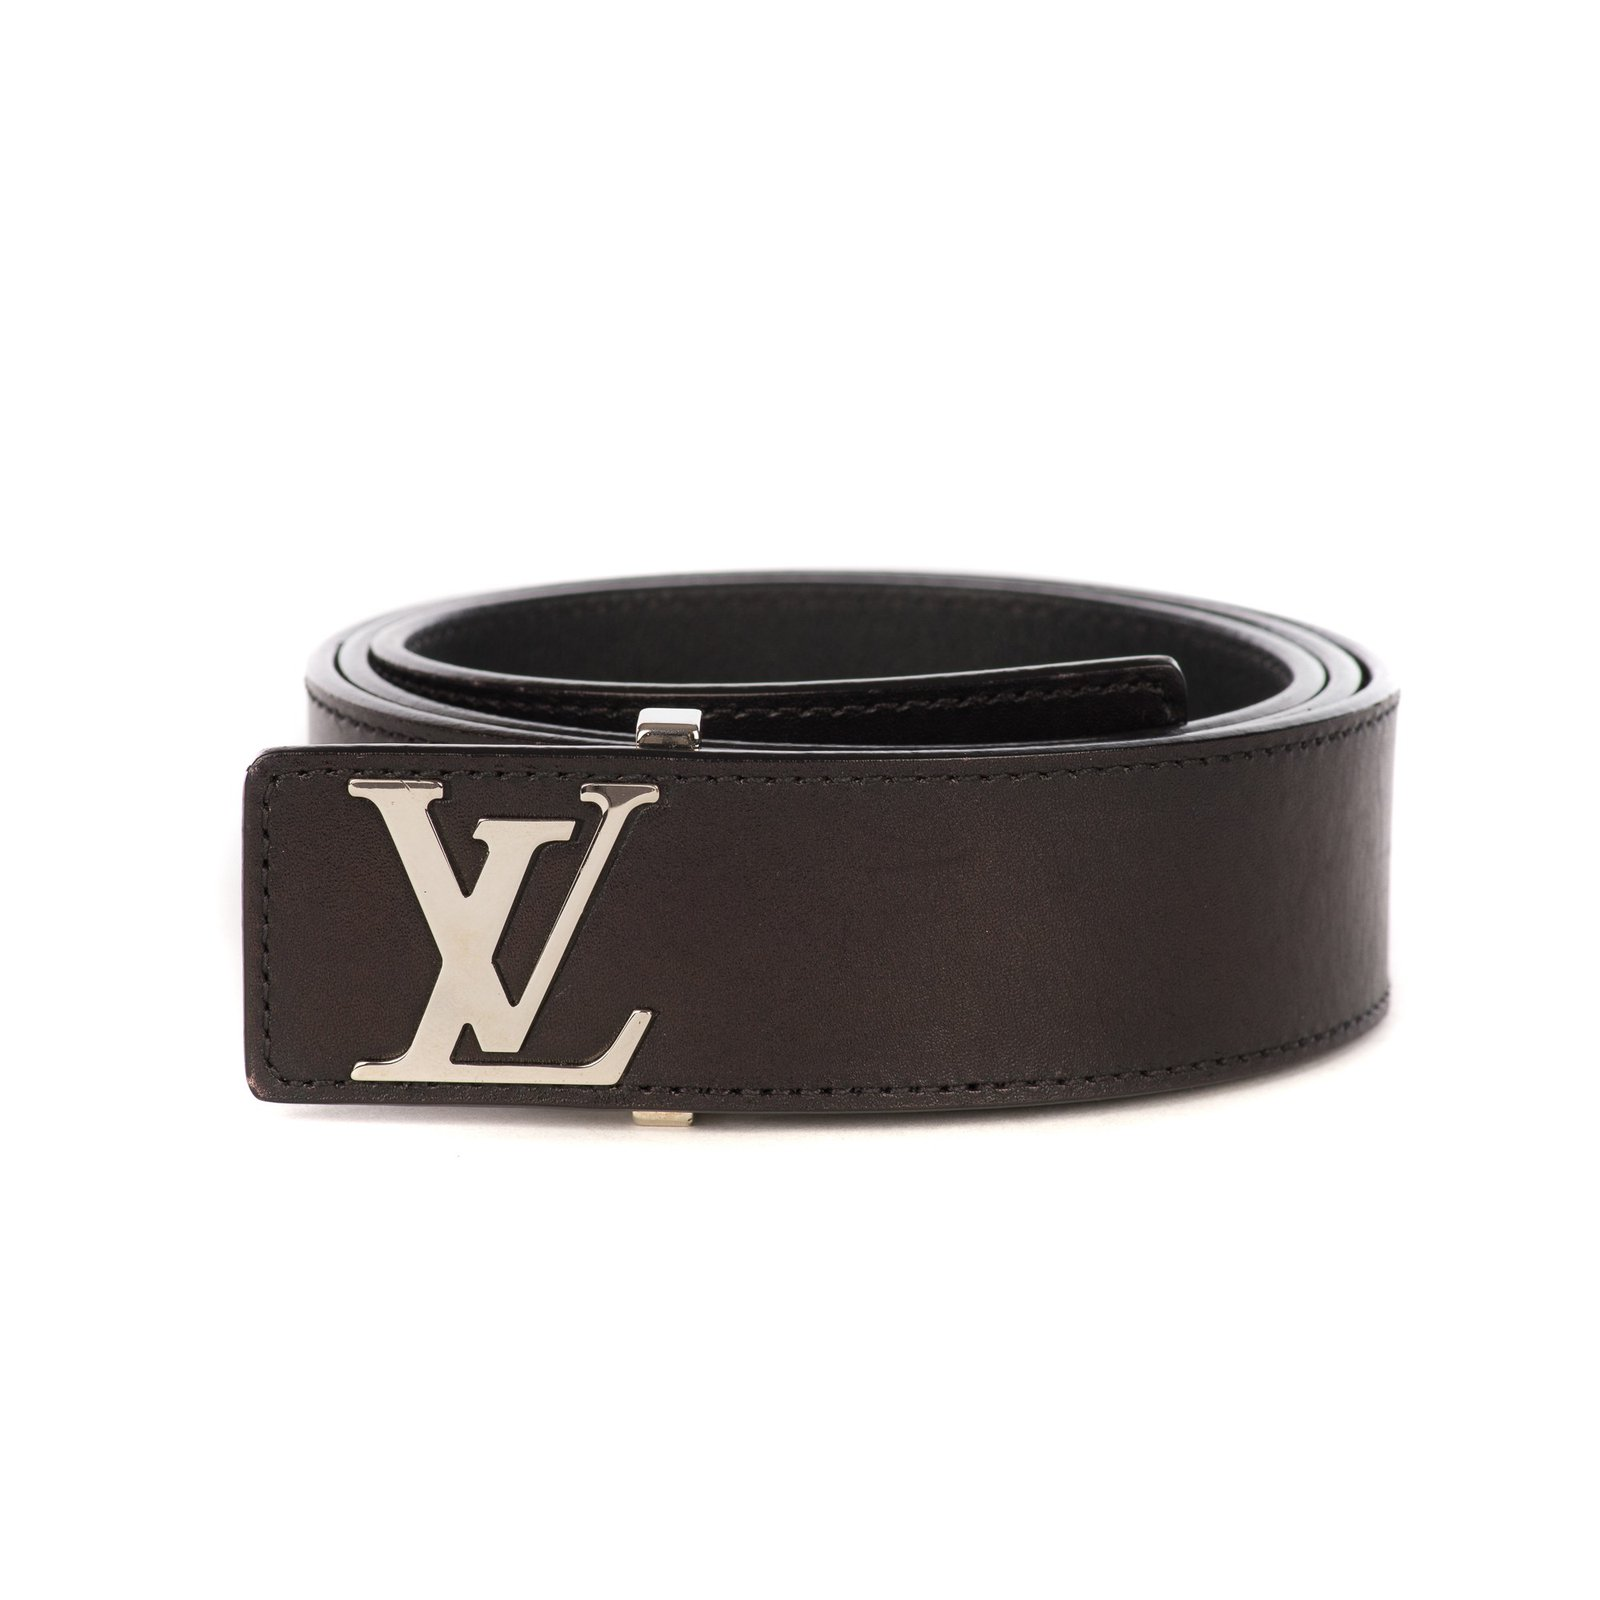 b12444379c51 Louis Vuitton Louis Vuitton belt in black leather and LV silver initials in  very good condition